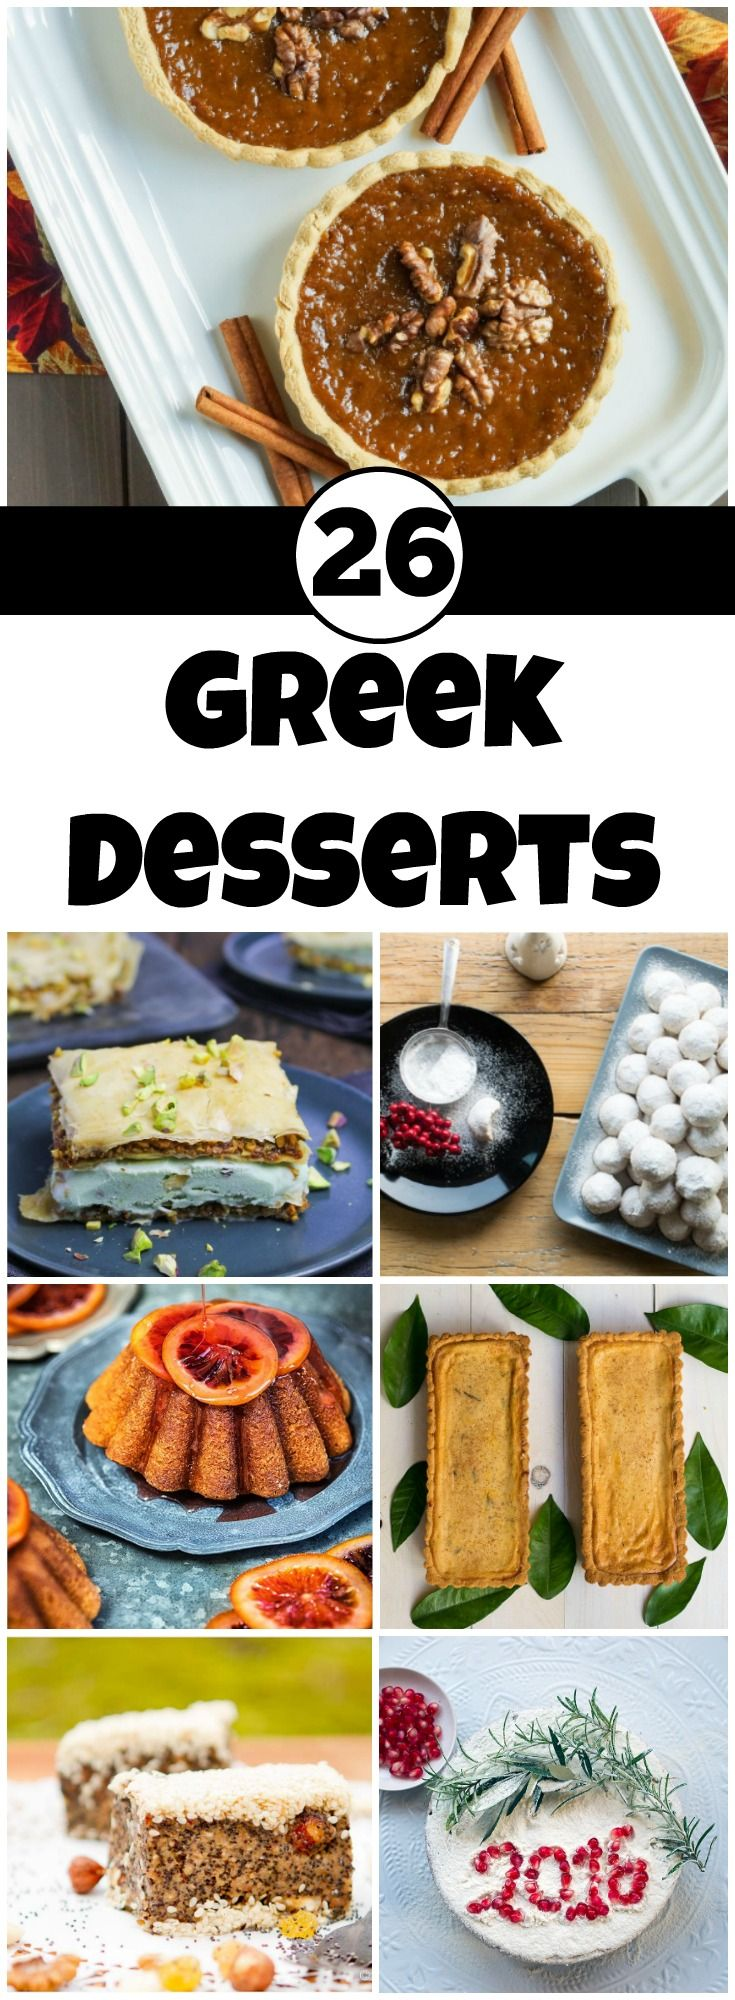 The sweetness of greece in 26 classic desserts classic desserts the sweetness of greece in 26 classic desserts ritely greek dessert recipesgreek recipeseasy forumfinder Choice Image